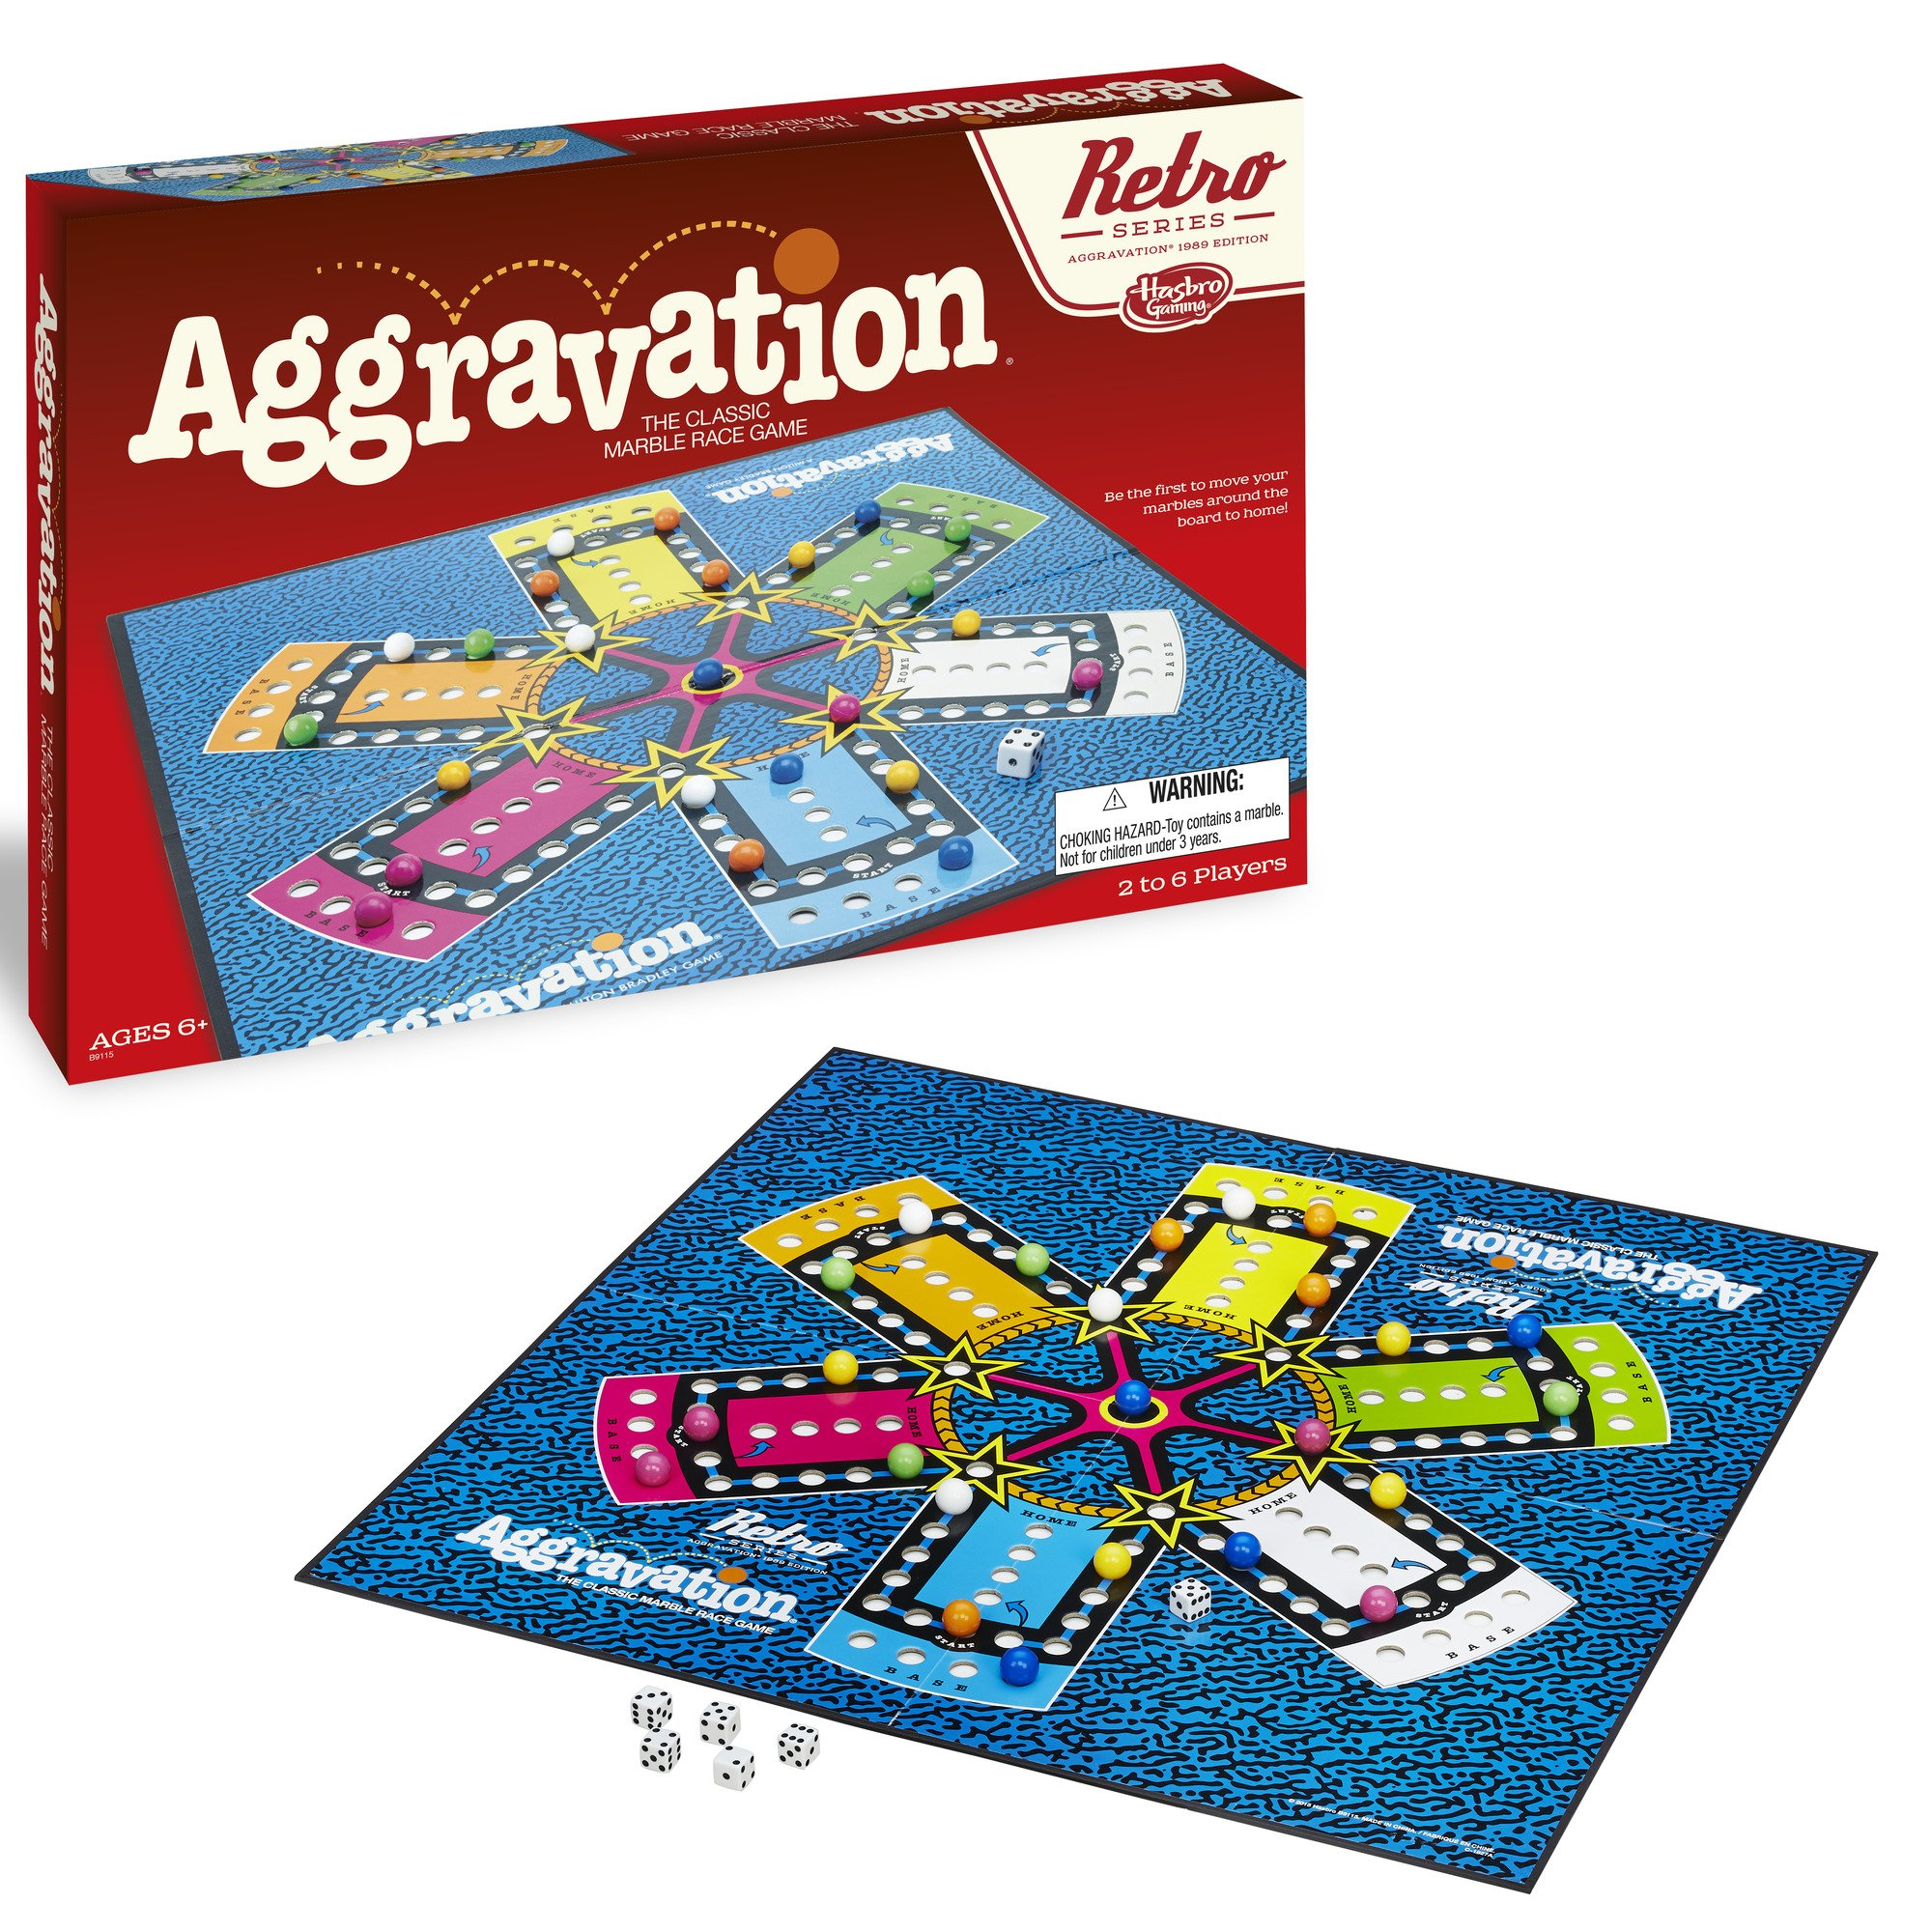 Hasbro Aggravation Game Retro Series 1989 Edition